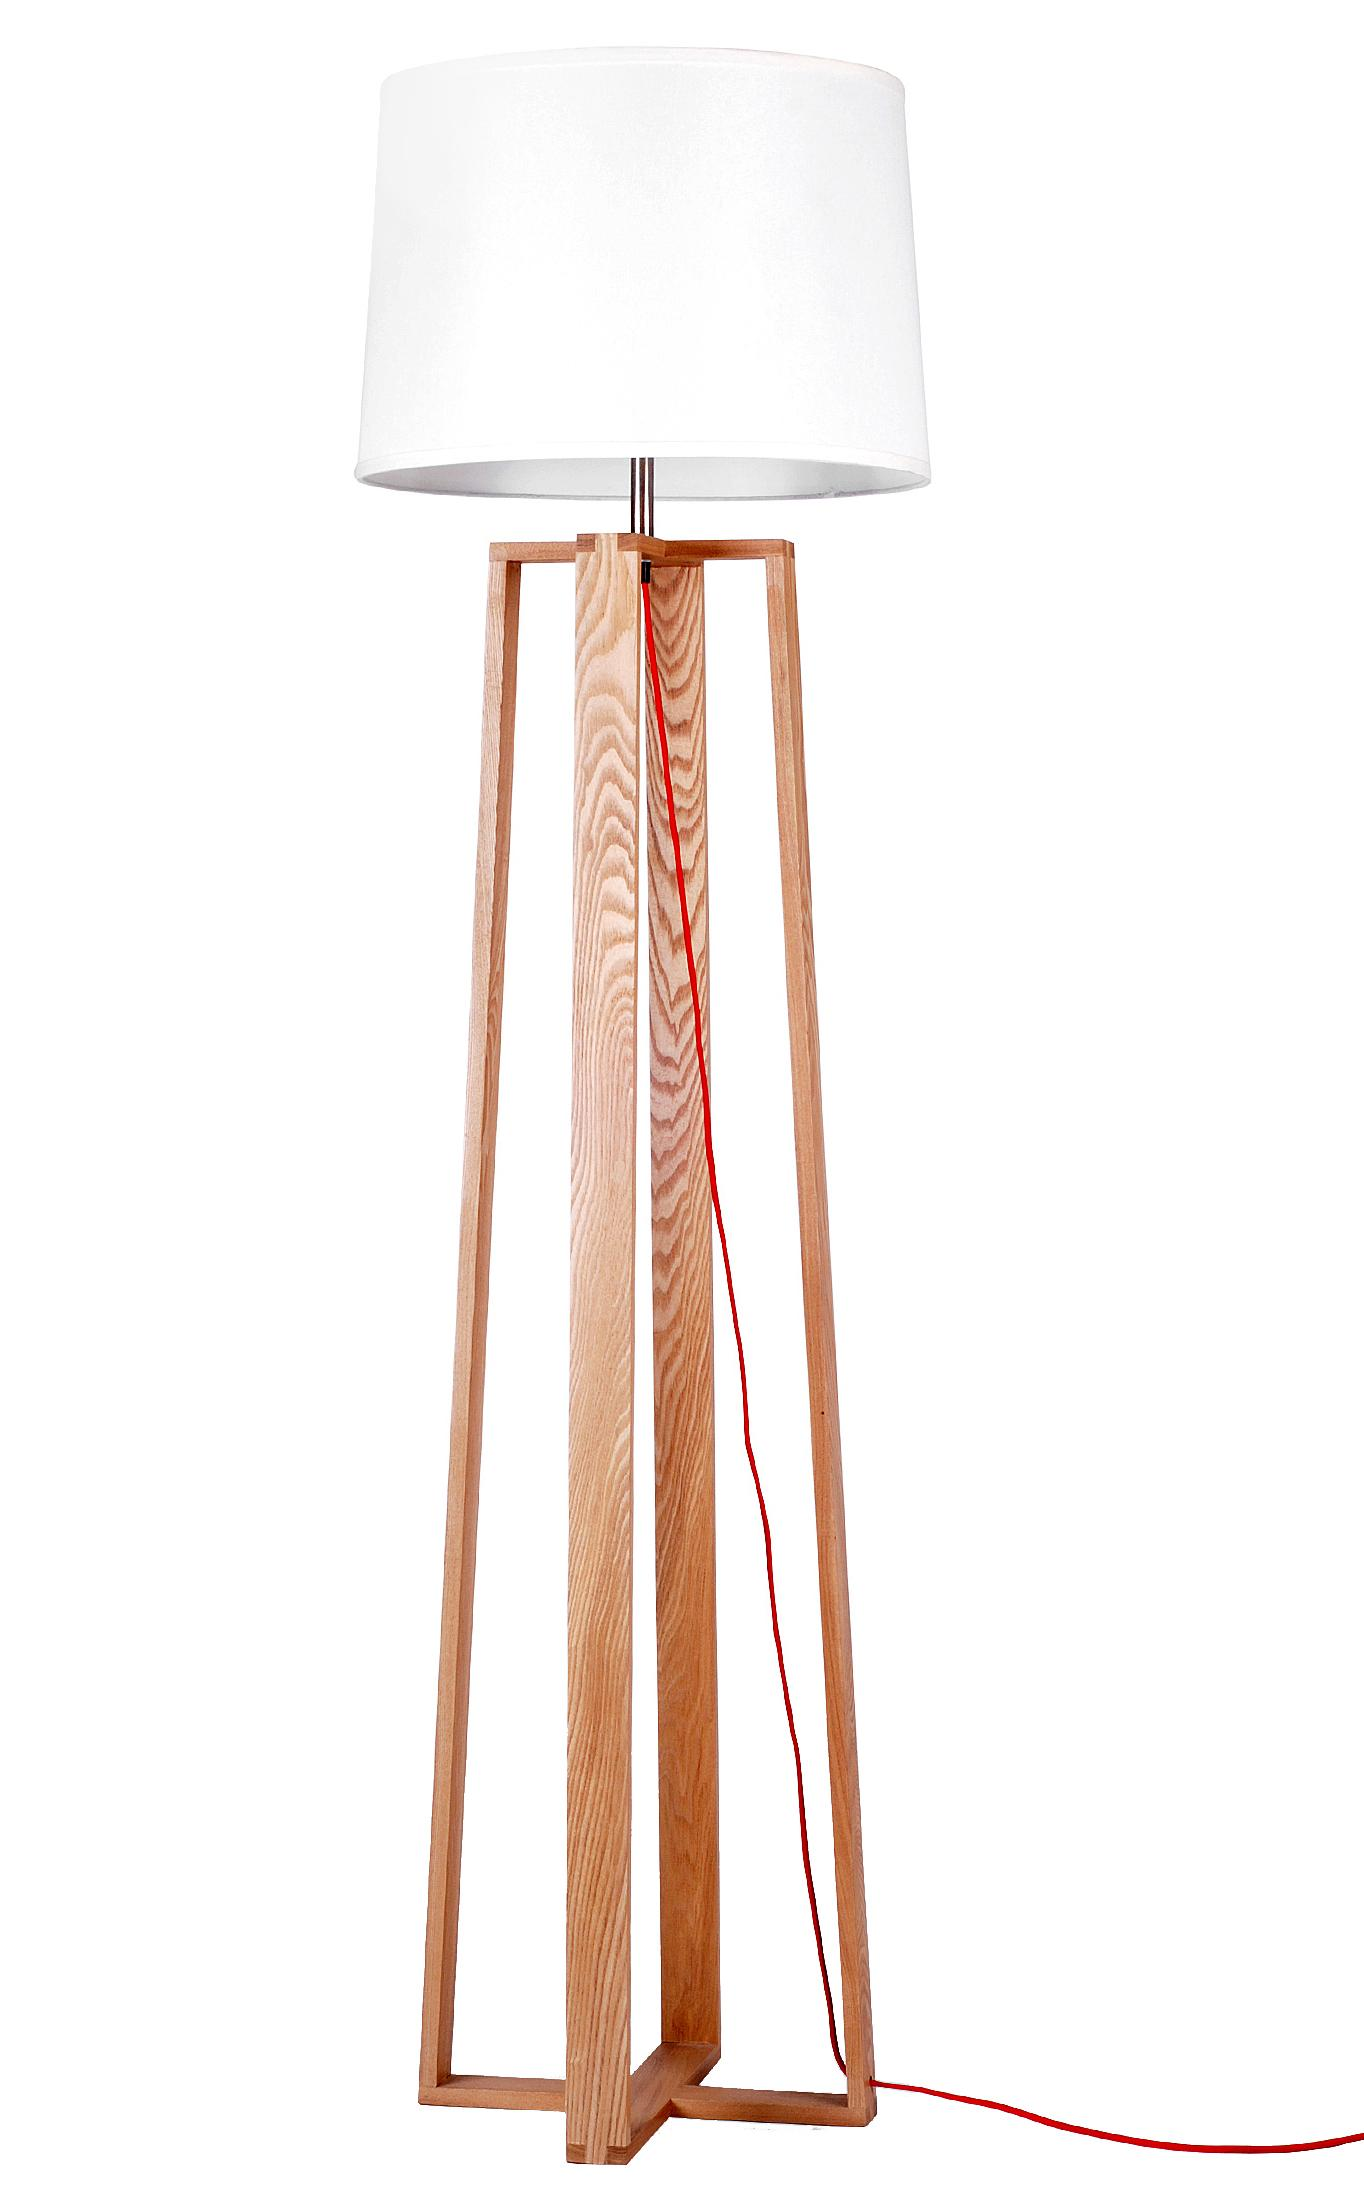 Stylish good quality wooden floor lamp in floor lampstylish good stylish good quality wooden floor lamp in floor lampstylish good quality wooden floor lamp detailed information geotapseo Gallery